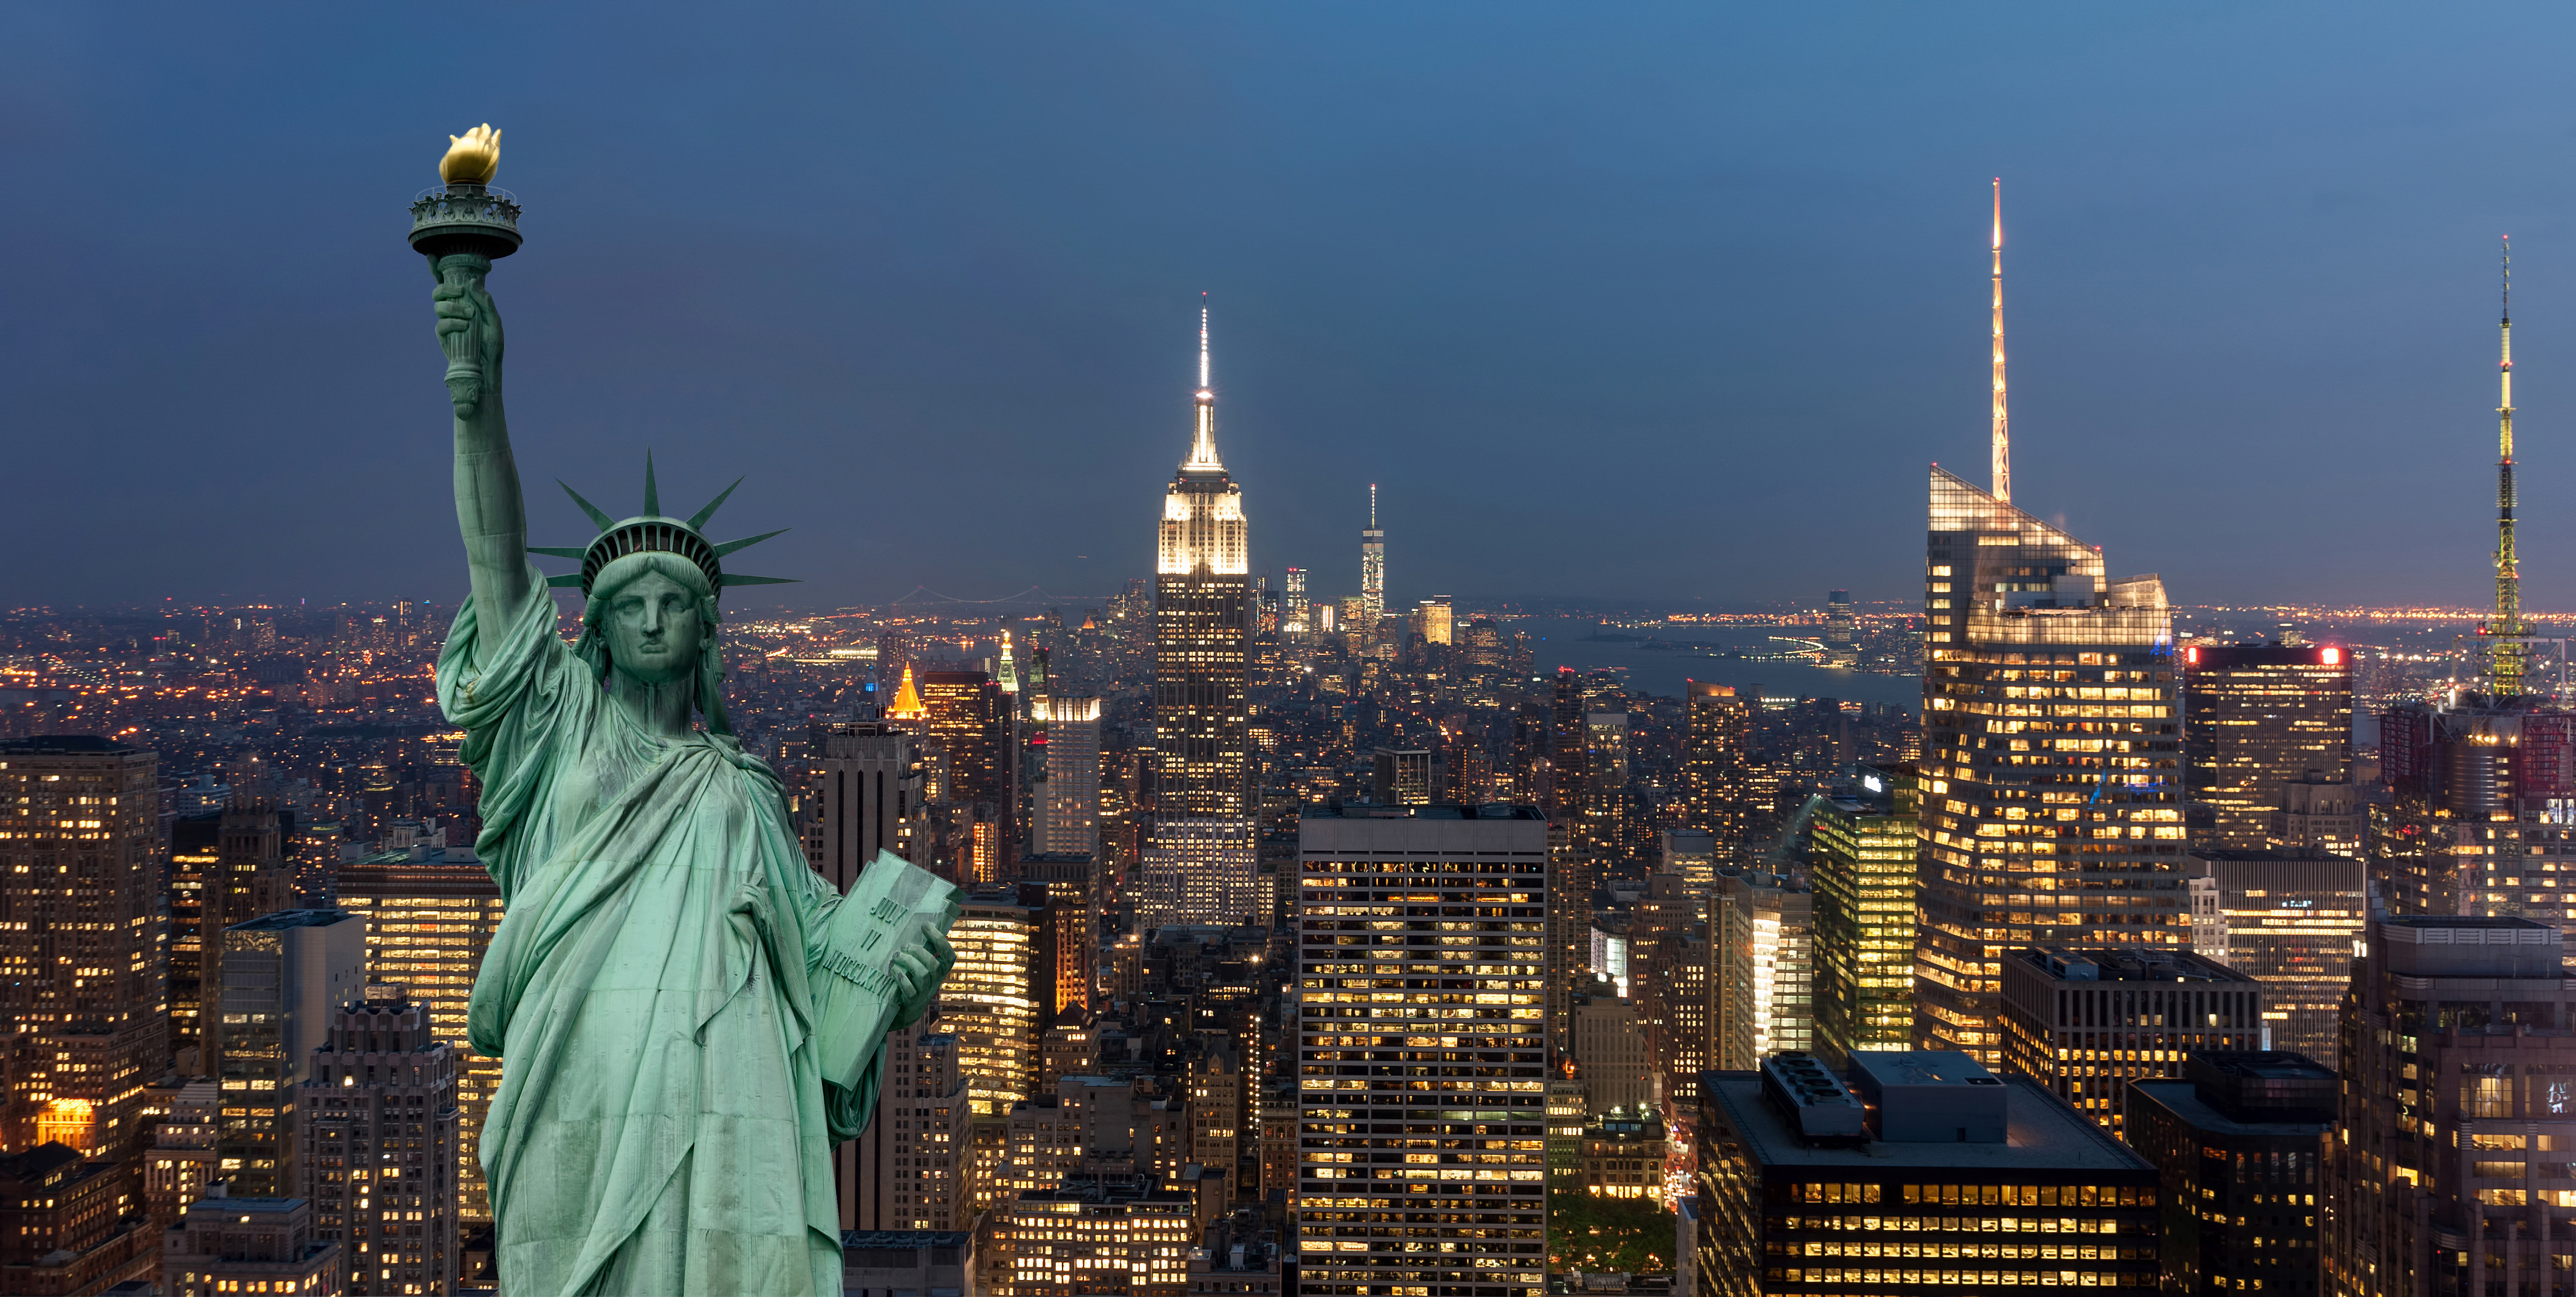 United States of America concept with statue of liberty in front of the New York cityscape at night